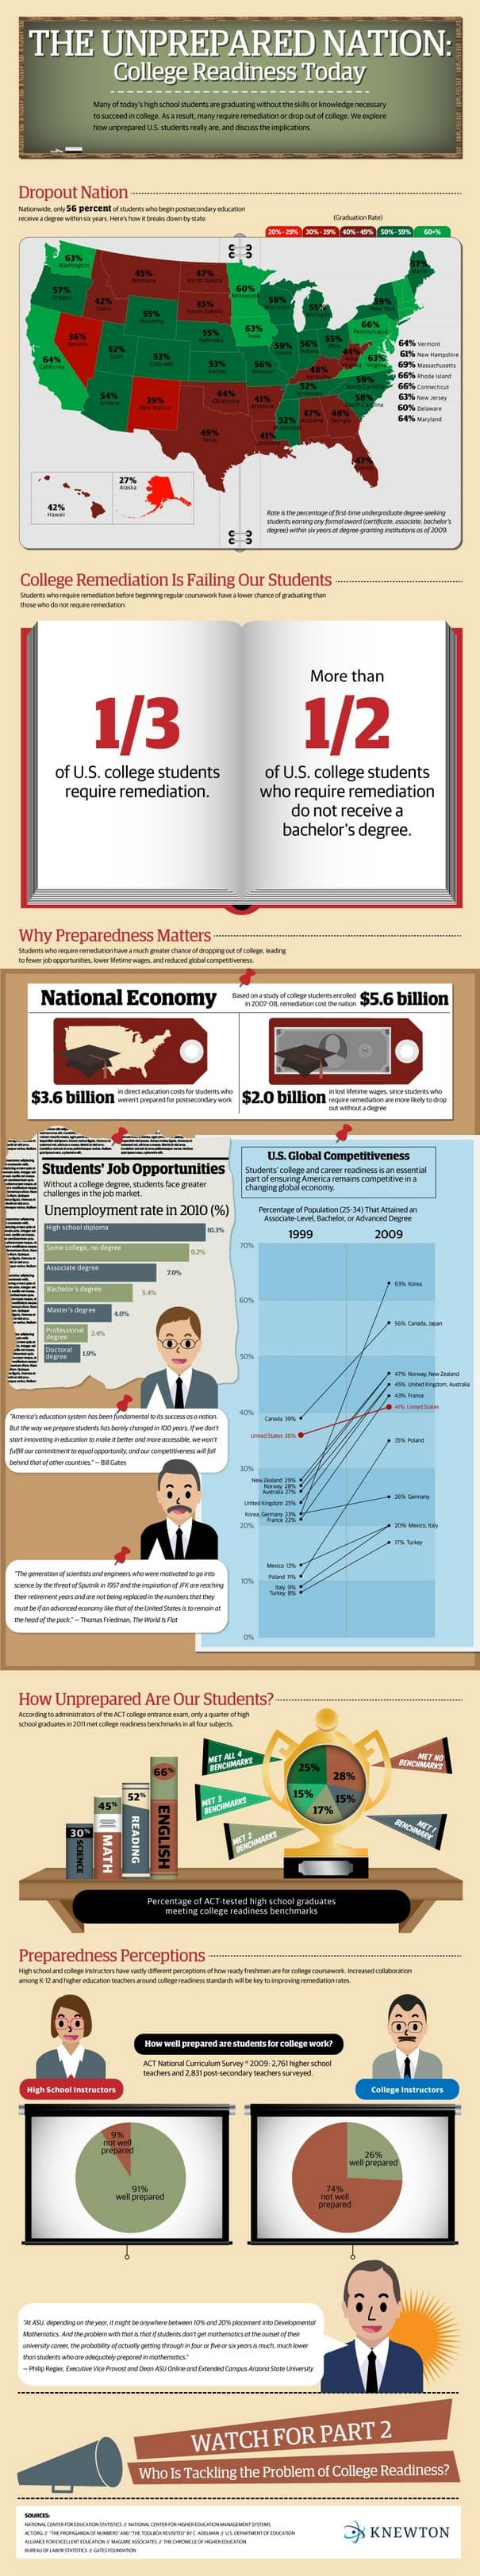 The Unprepared Nation Infographic